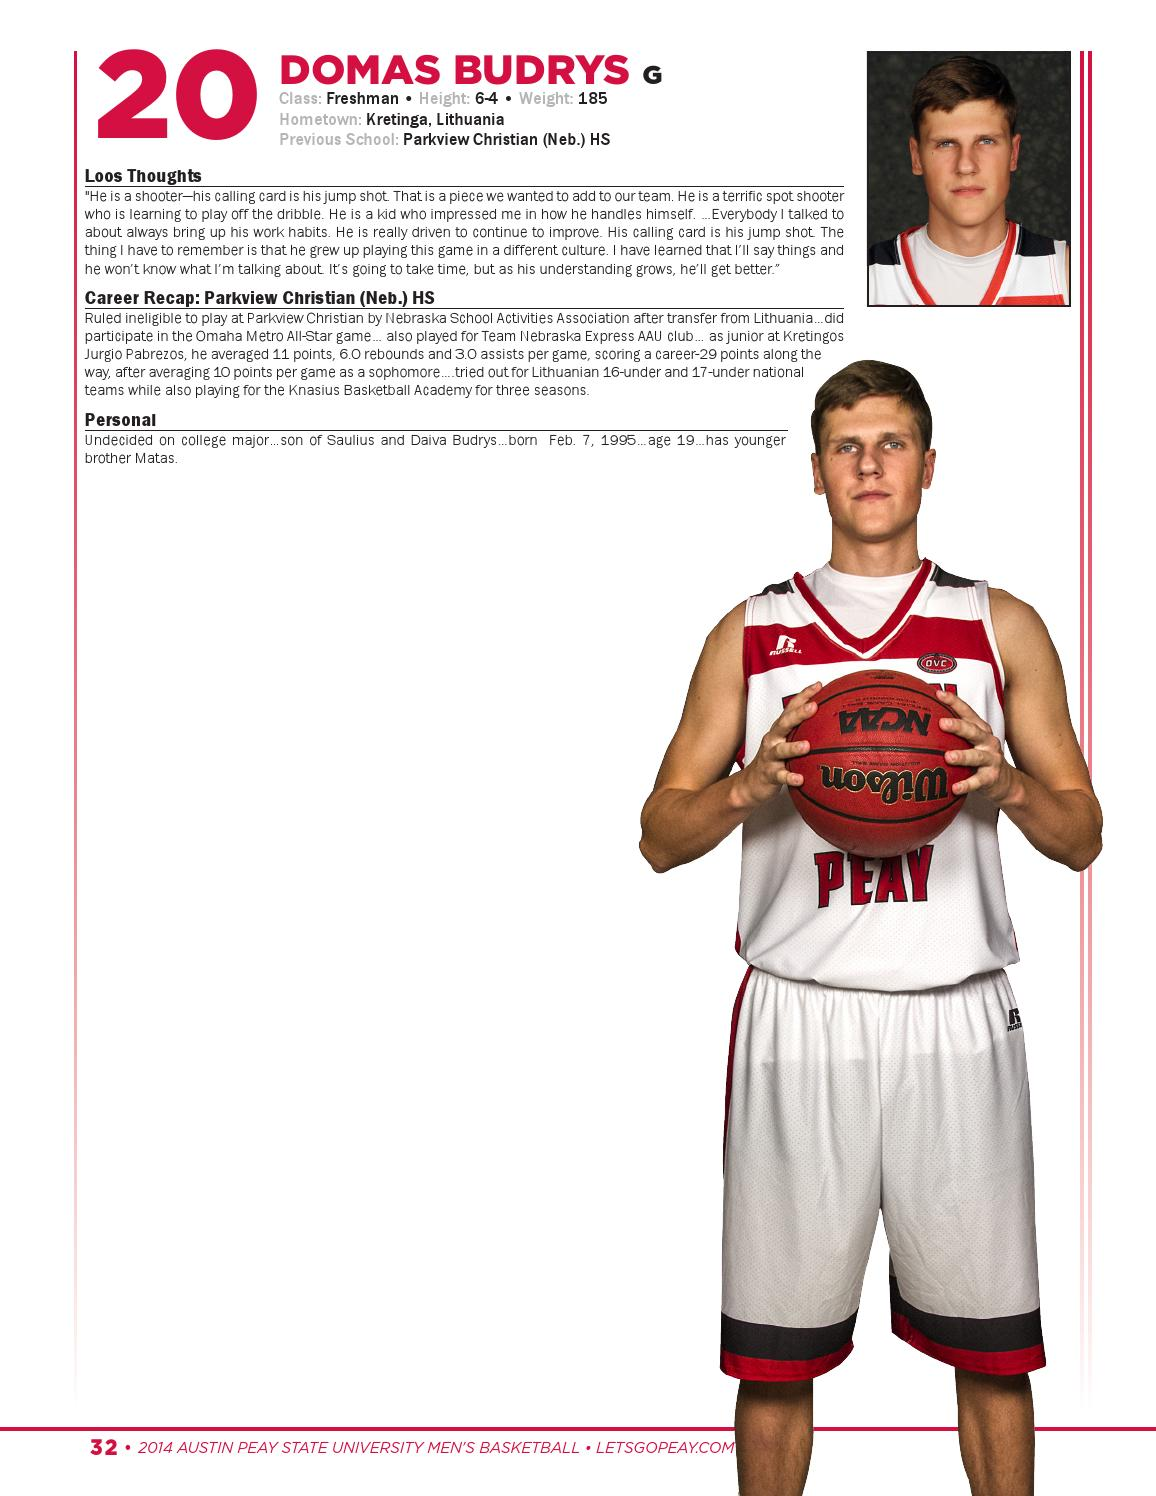 6b4f02610 2014-15 Austin Peay Men s Basketball Media Guide by APSU Sports ...